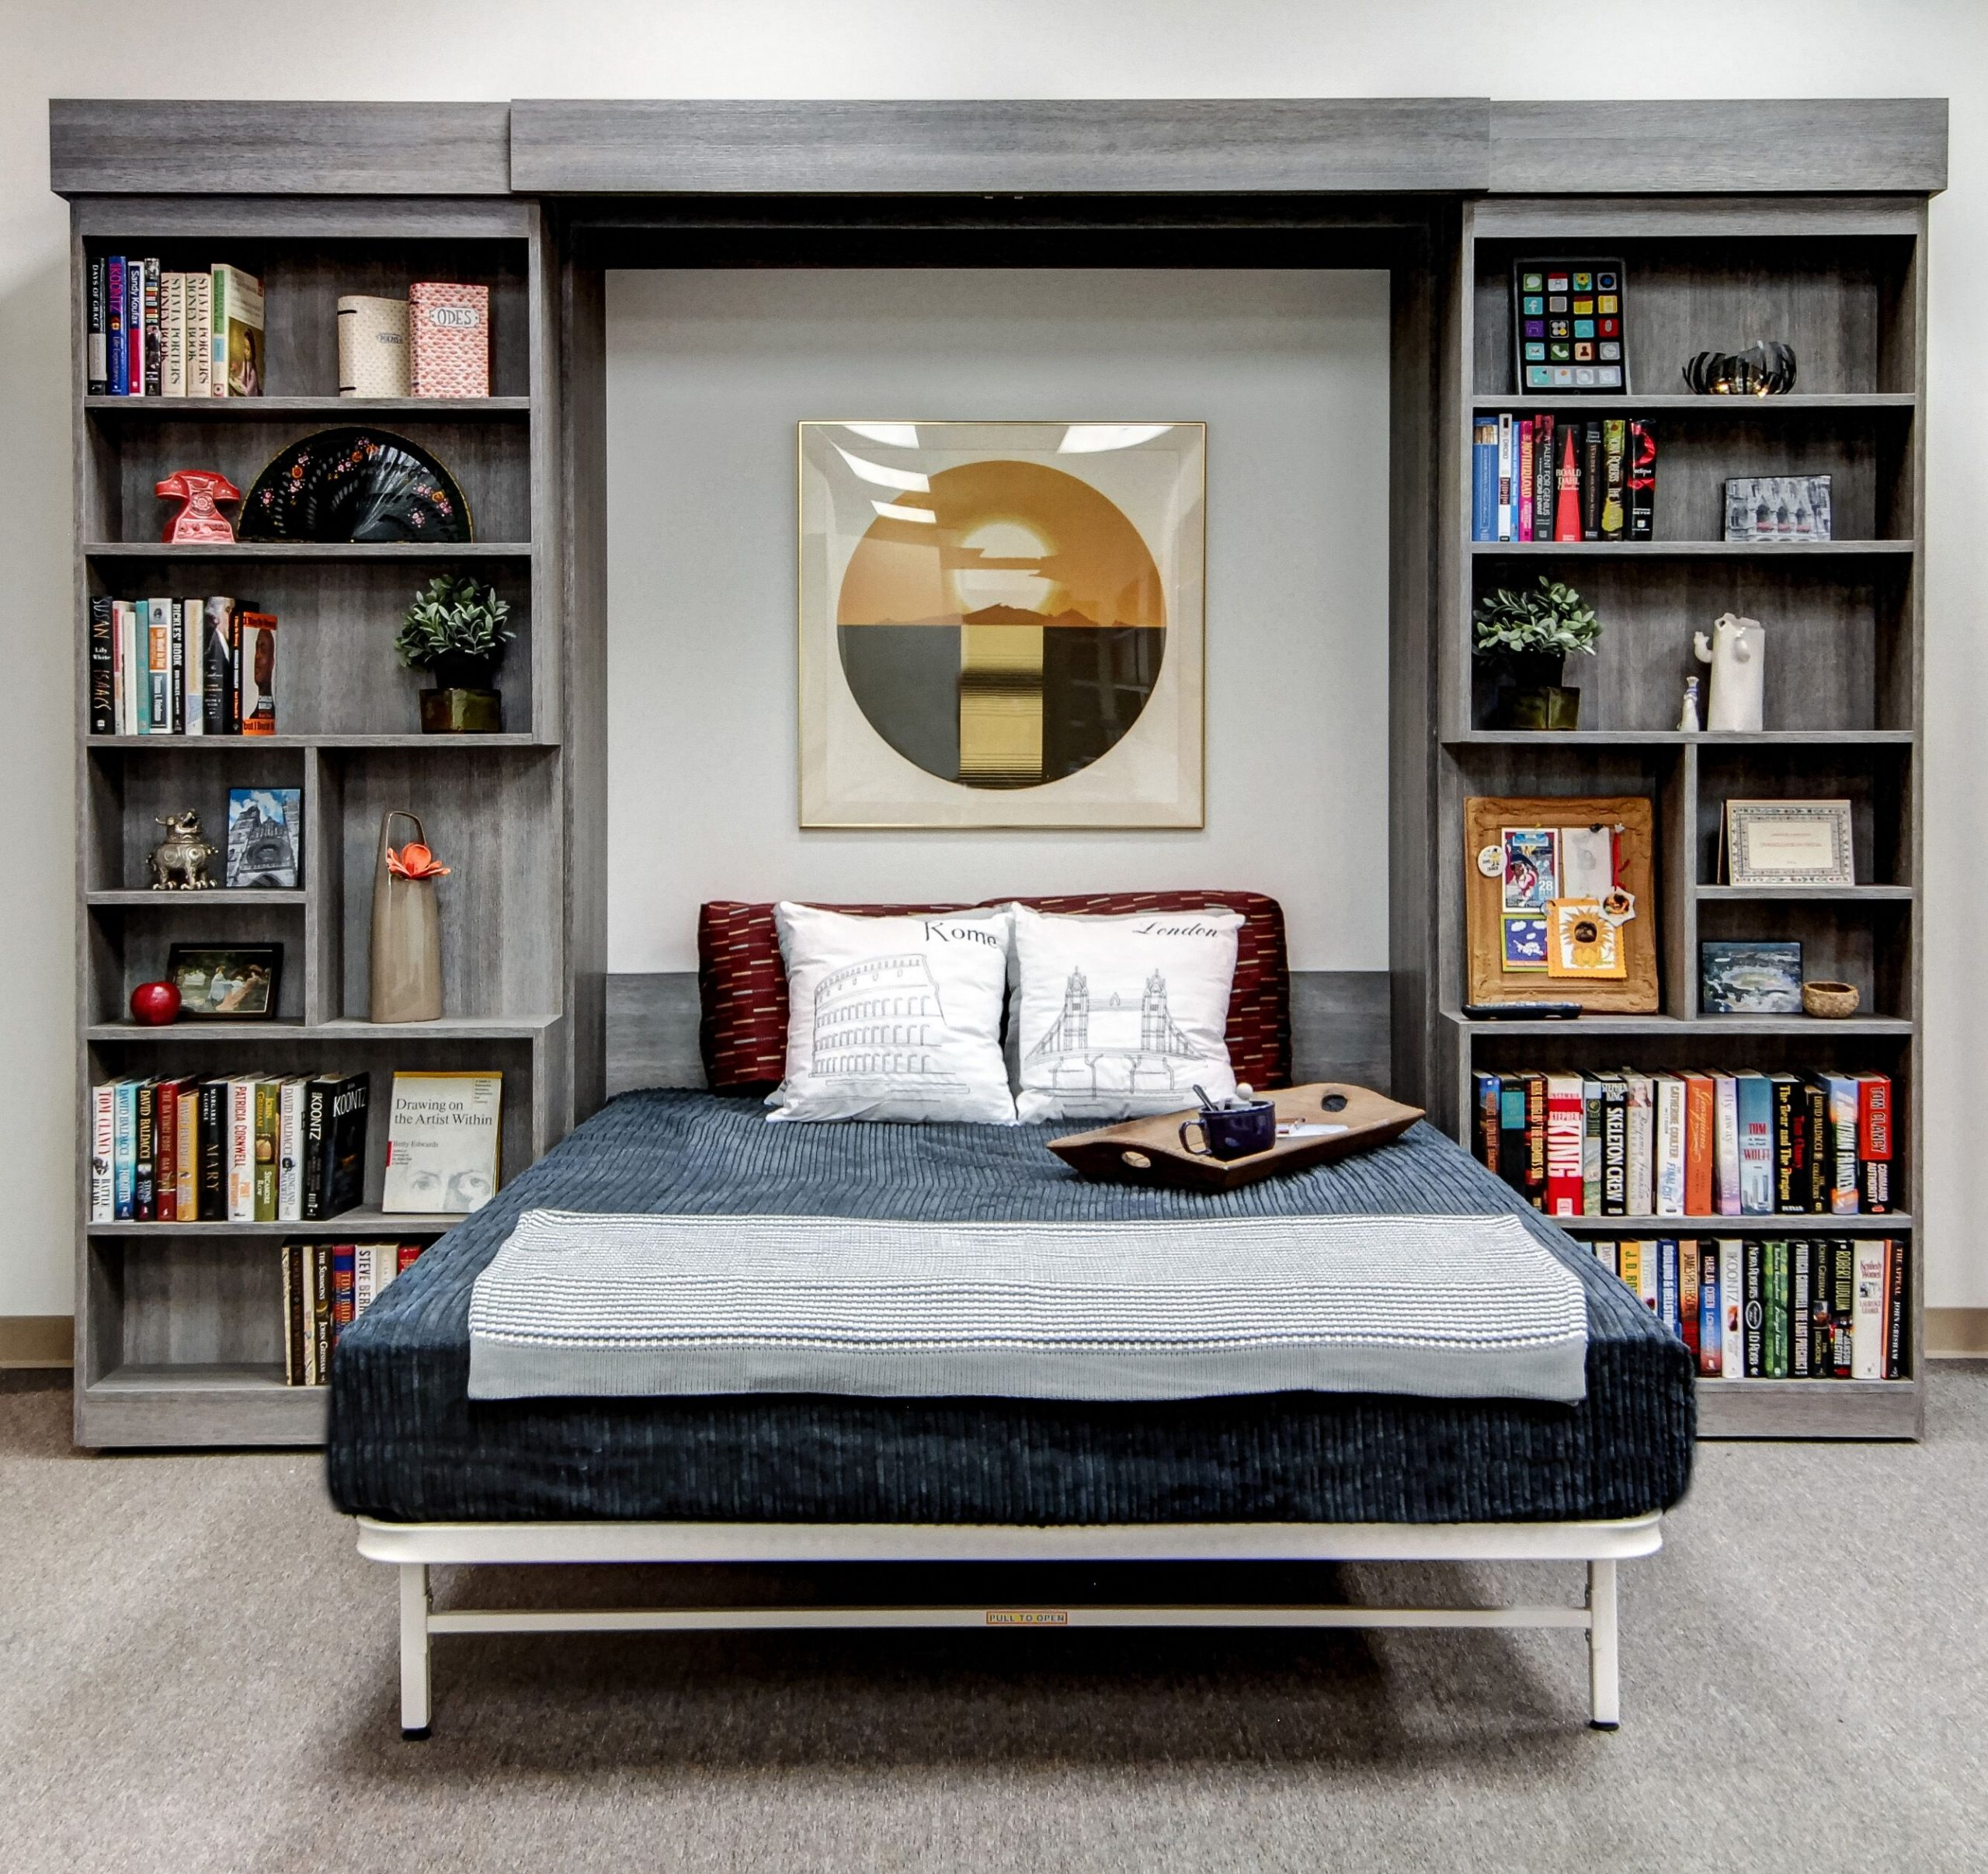 Murphy Bed in sliding bookcase cabinet